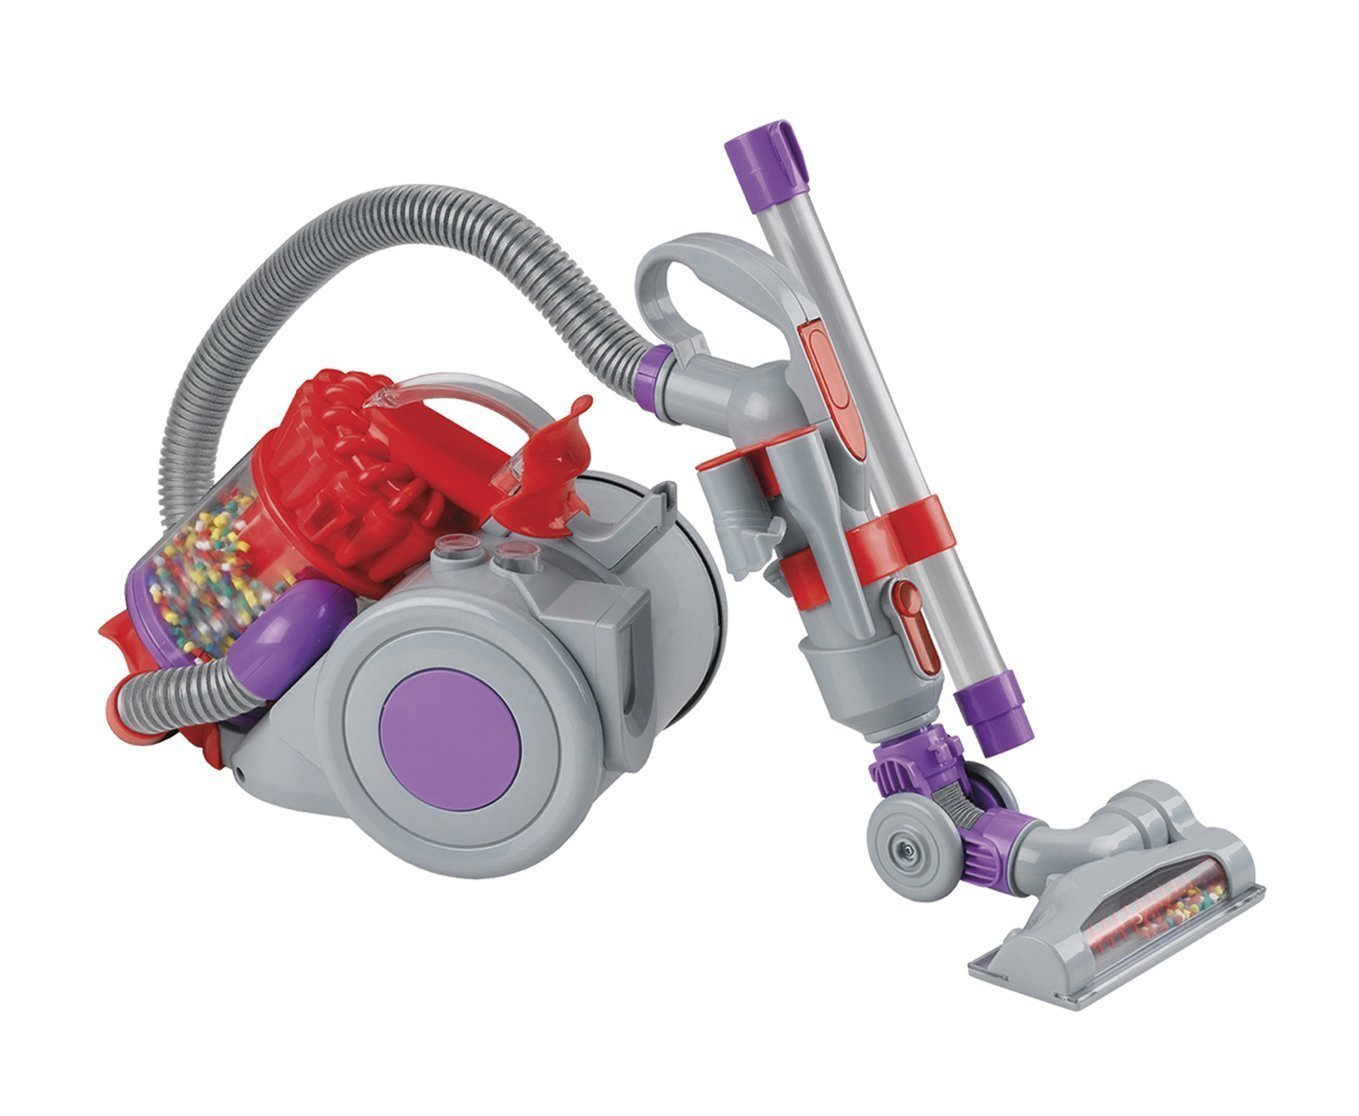 Casdon Aspirador de Juguete Little Helper Dyson DC22: Amazon.es ...